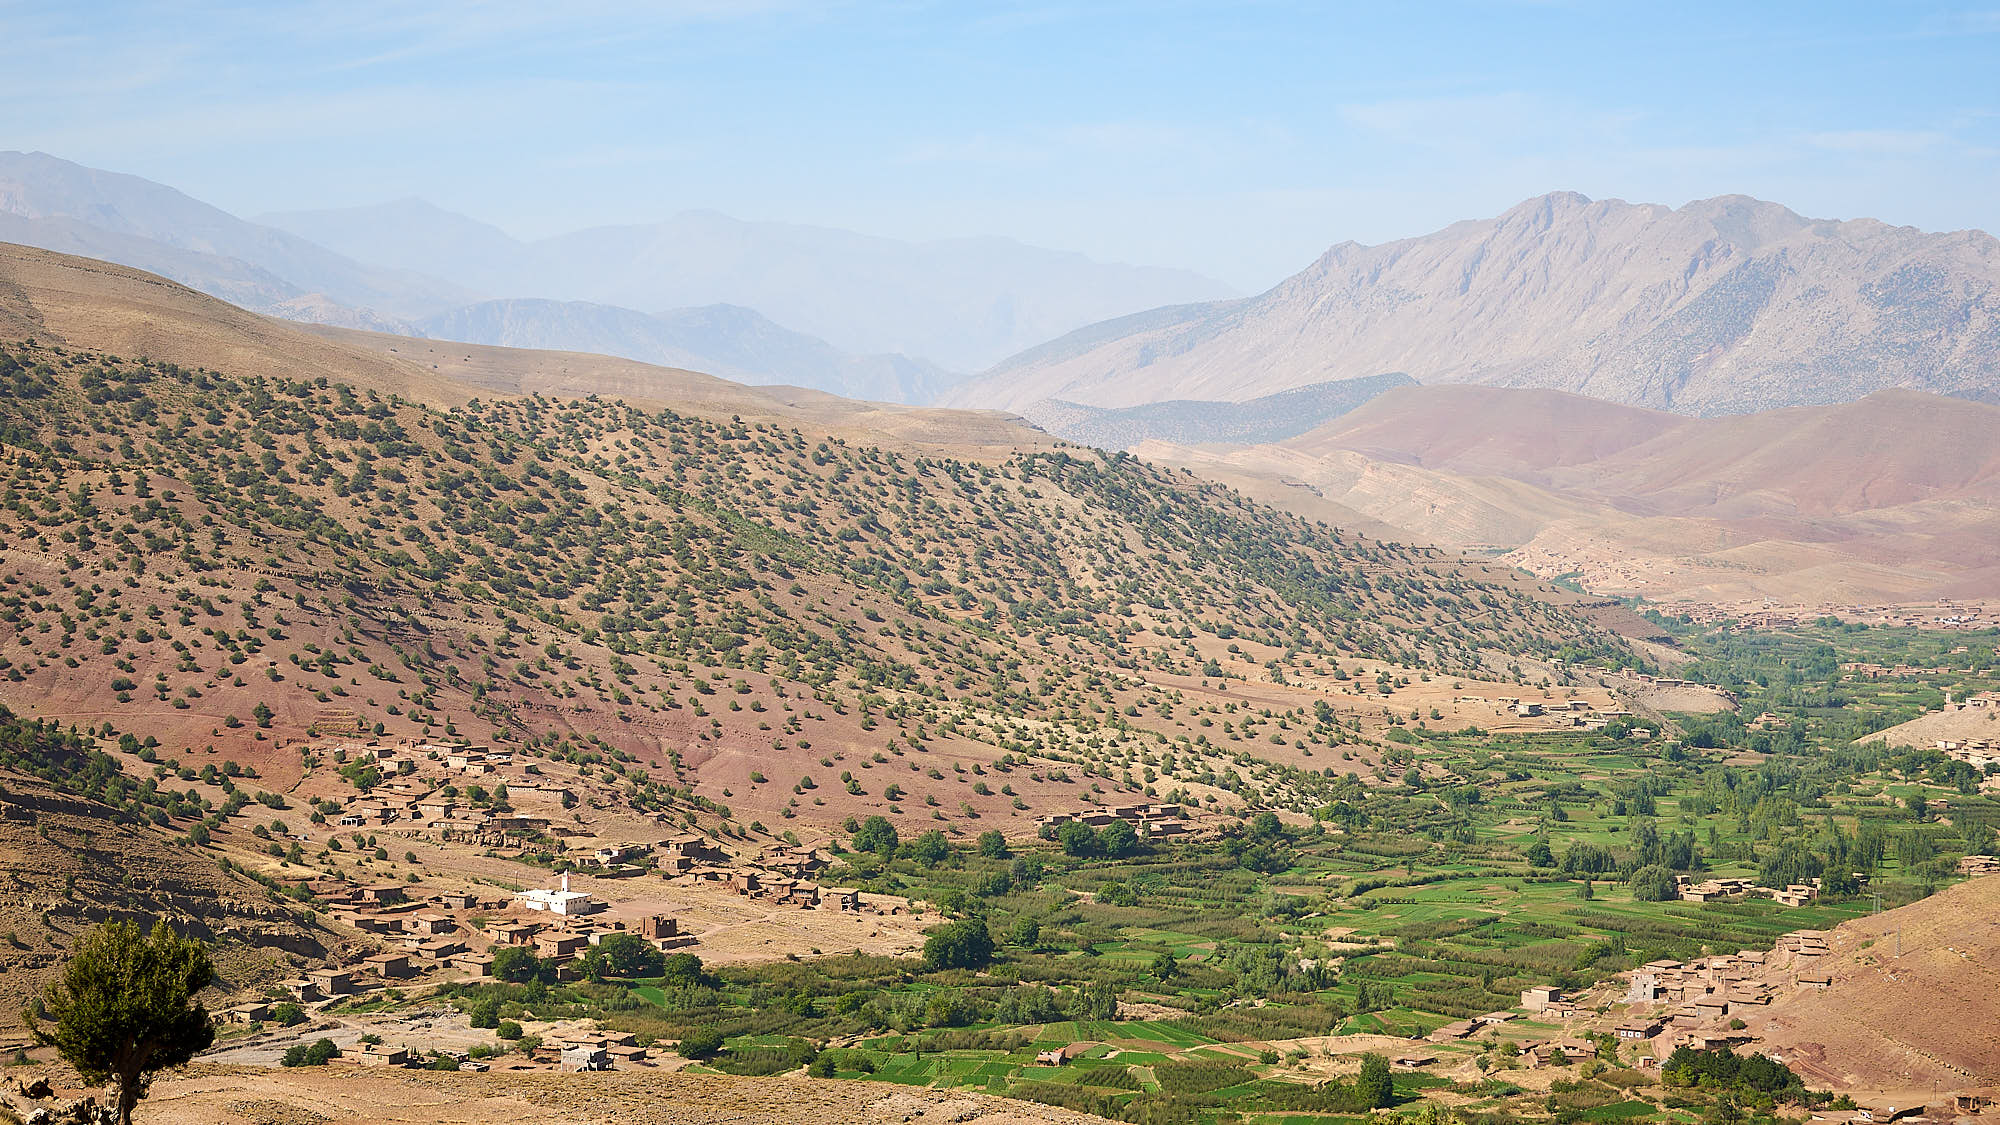 View of a valley in Morocco's High Atlas